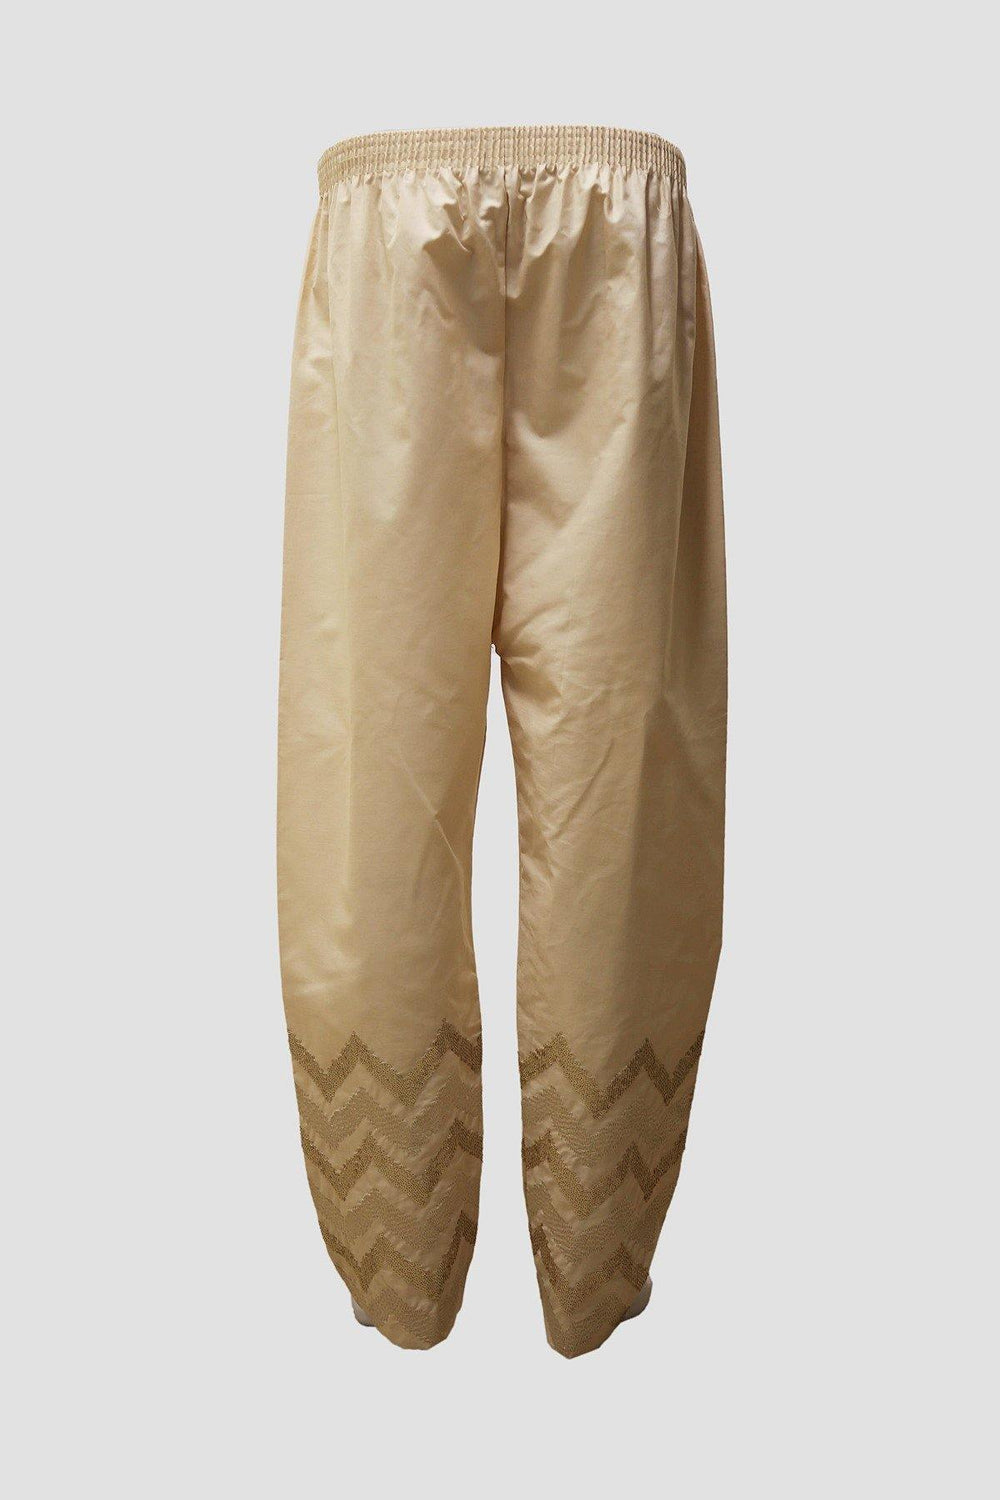 Cotton Stacker Embroidered Trousers - Beige